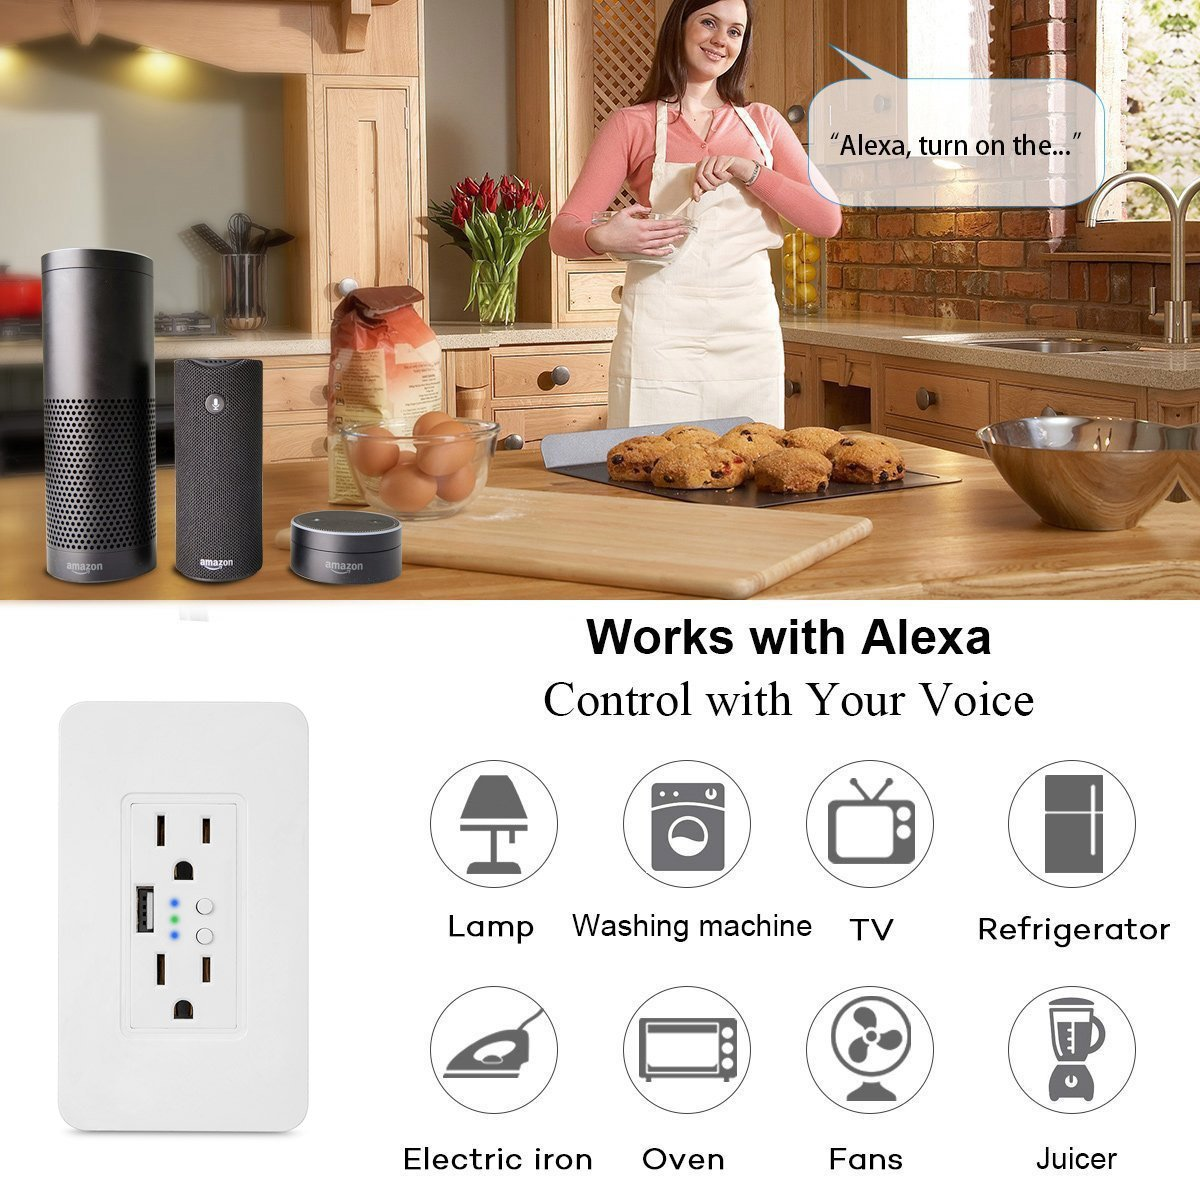 Smart WiFi High Speed USB Charger/USB Charger Wall Outlet (2.0A-5VDC) Dual Outlet Receptacle - Independently Remote Control Duplex Outlet 15A, Wireless Voice Control and Timer Switch with Scheduling by Alysontech (Image #9)